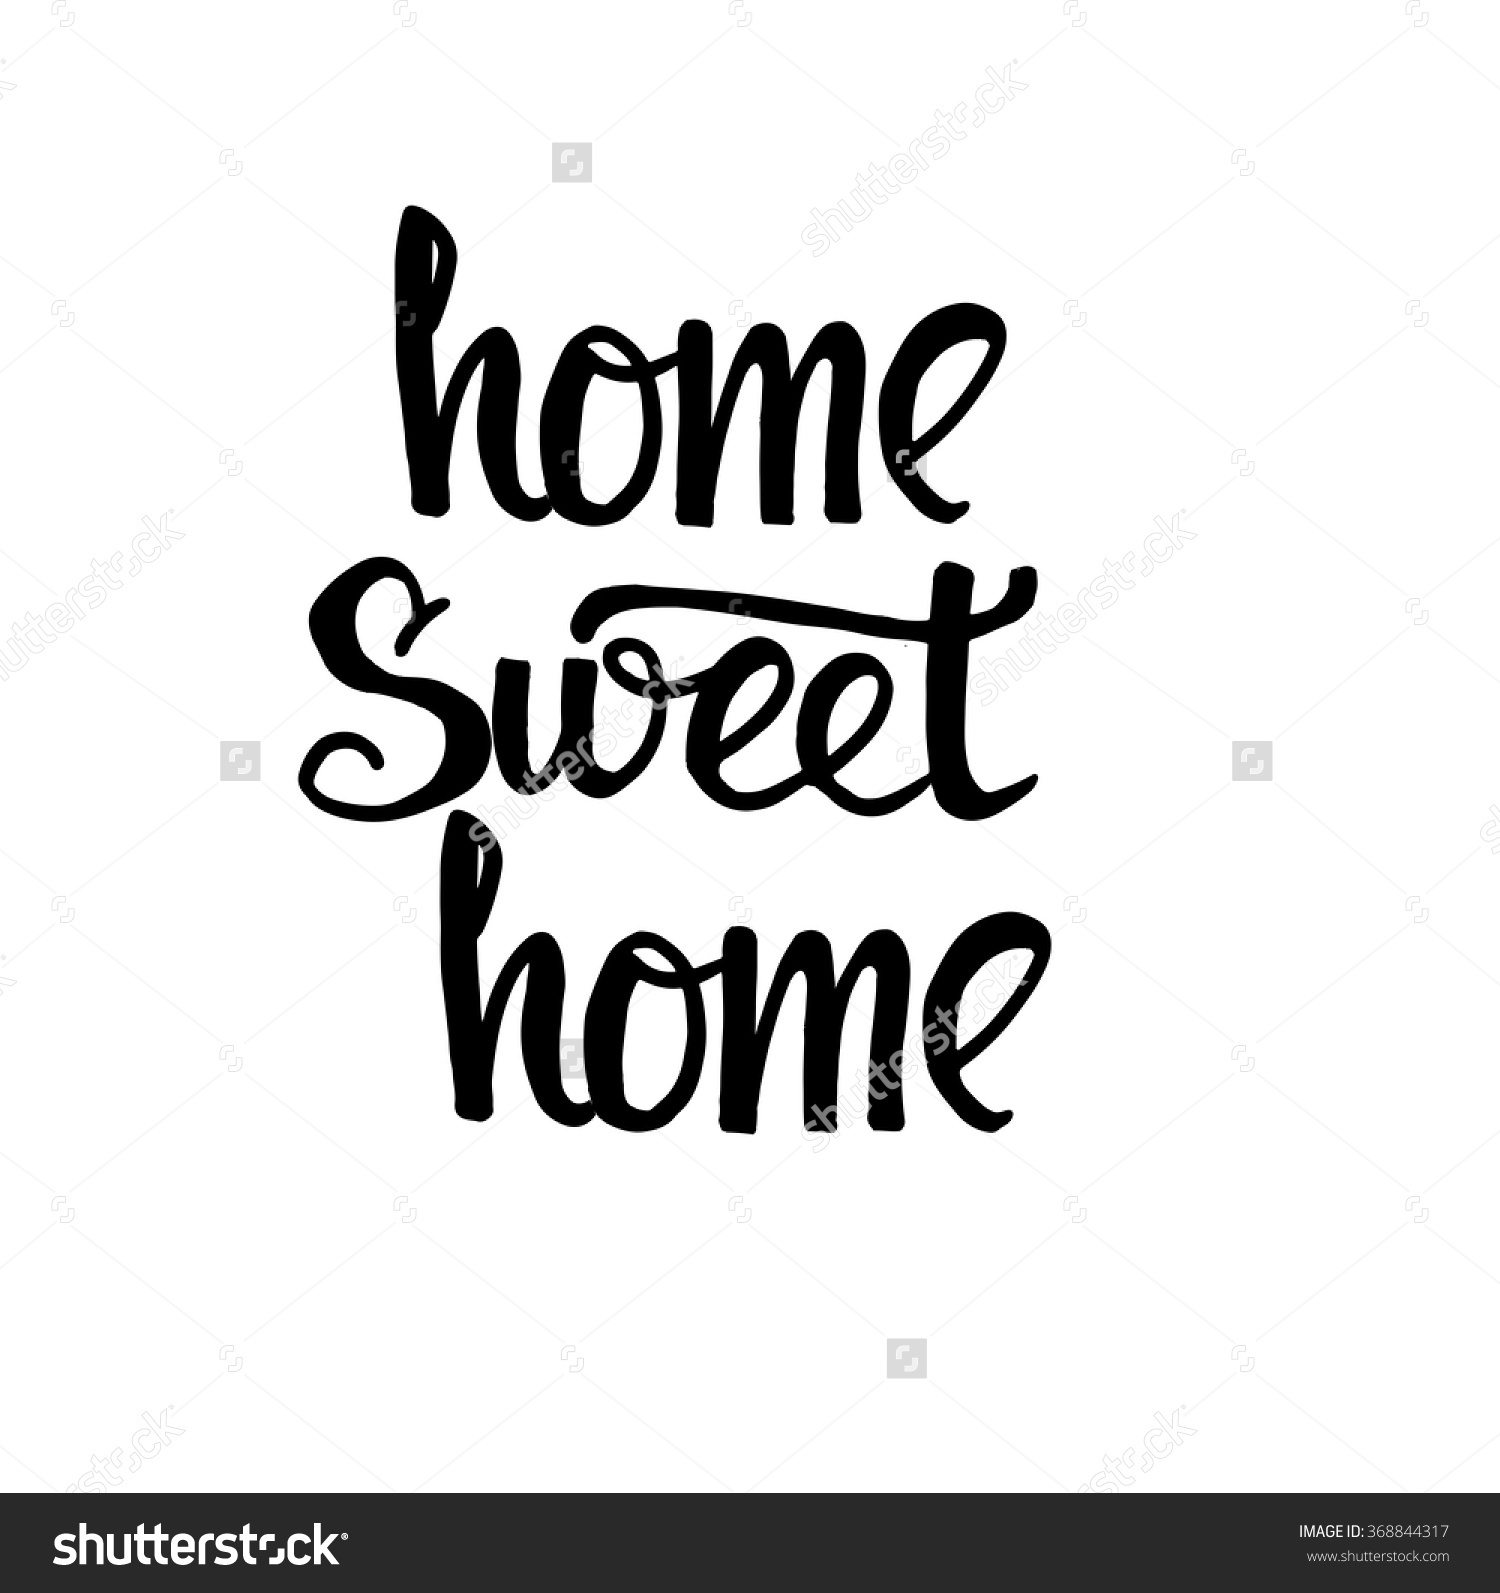 Home sweet home clipart black and white banner stock Home Sweet Home Card Hand Drawn Stock Vector 368844317 - Shutterstock banner stock